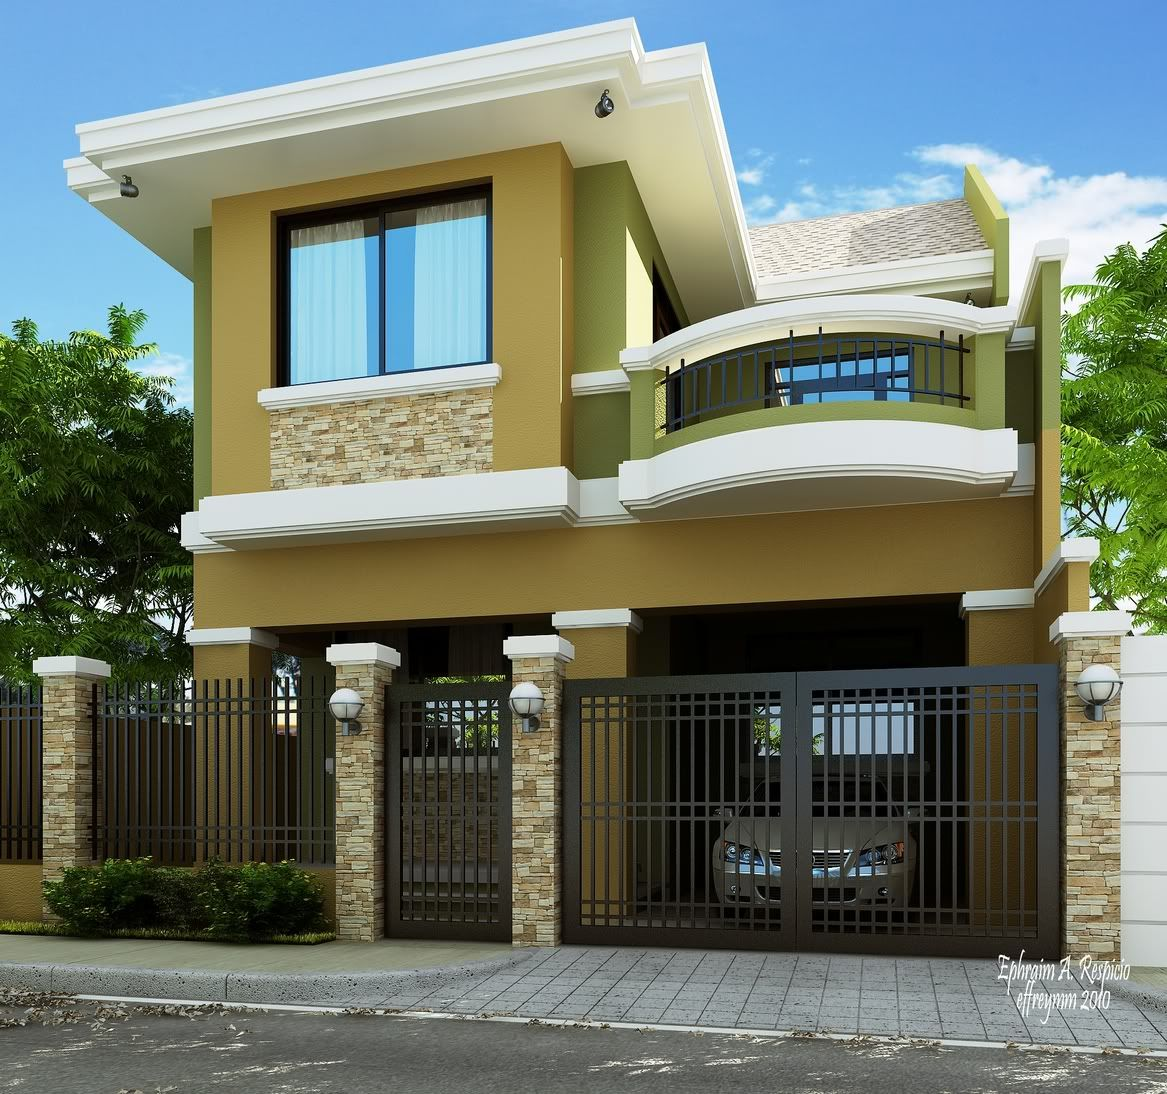 128725bcfa66f1ce8af930a78806dd0e - Get Small 2 Storey Modern House Design With Floor Plan Gif